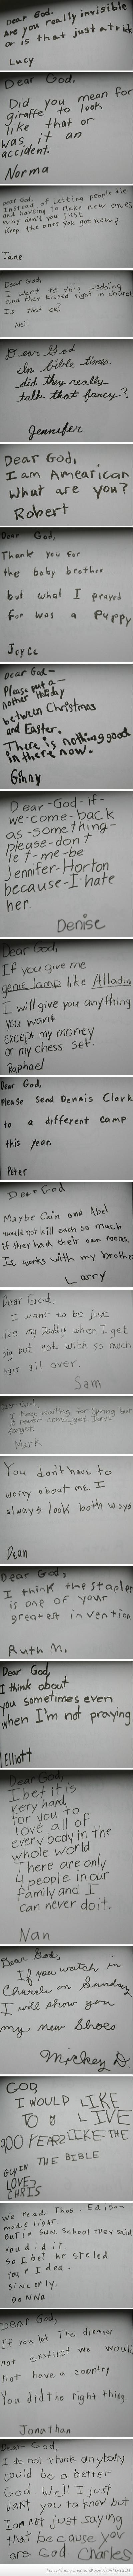 lol: Dear God, Sweet, So Cute, Cute Kids, Mouths, Babes, So Funny, New Shoes, Kids Letters